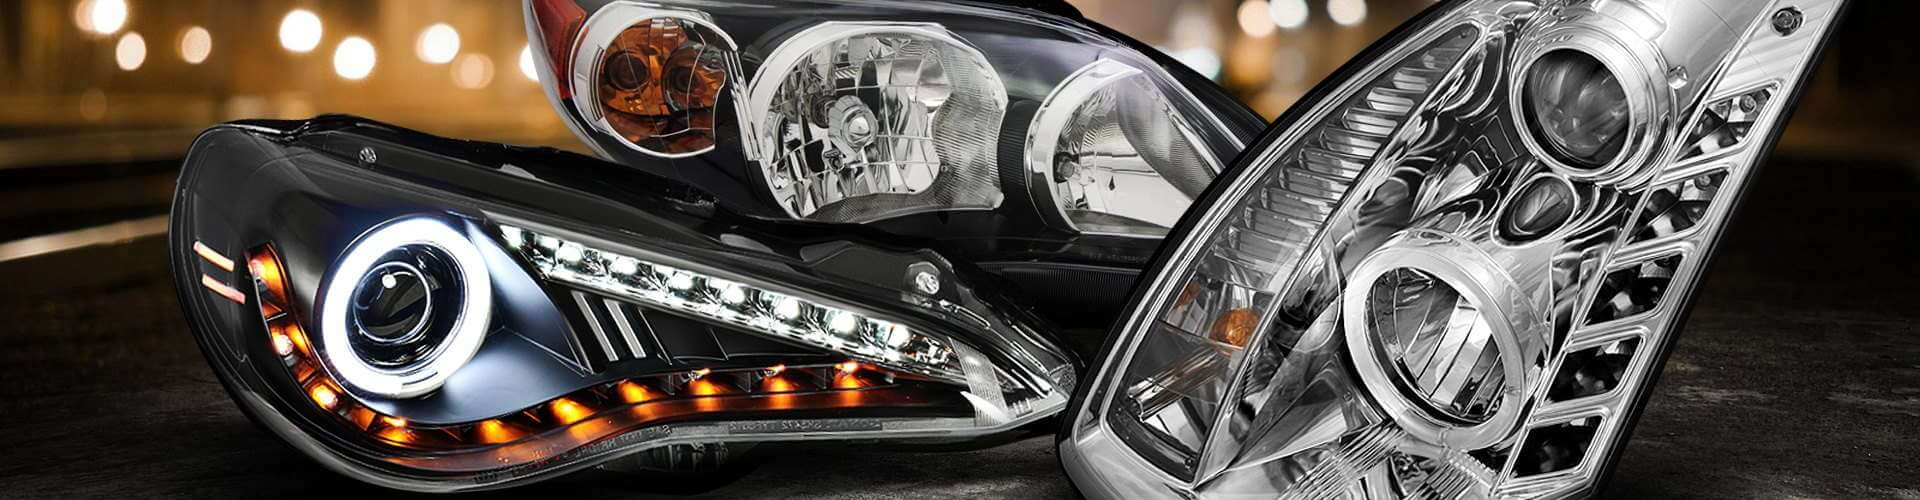 Halo Headlights: Custom Lighting Solutions for Cars & Trucks